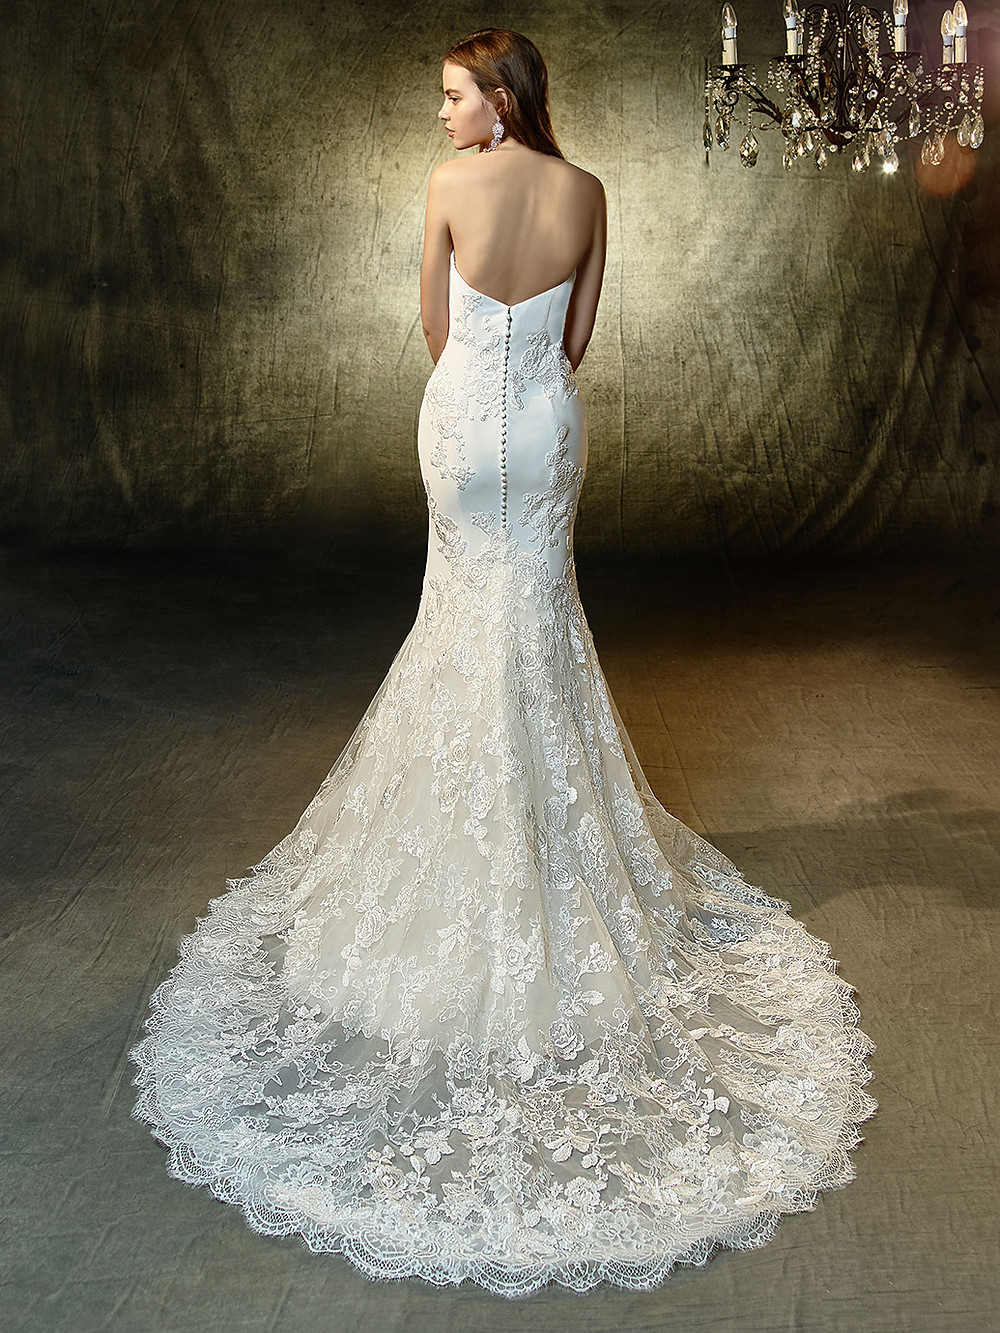 Laura wedding dress from Blue by Enzoani 2019